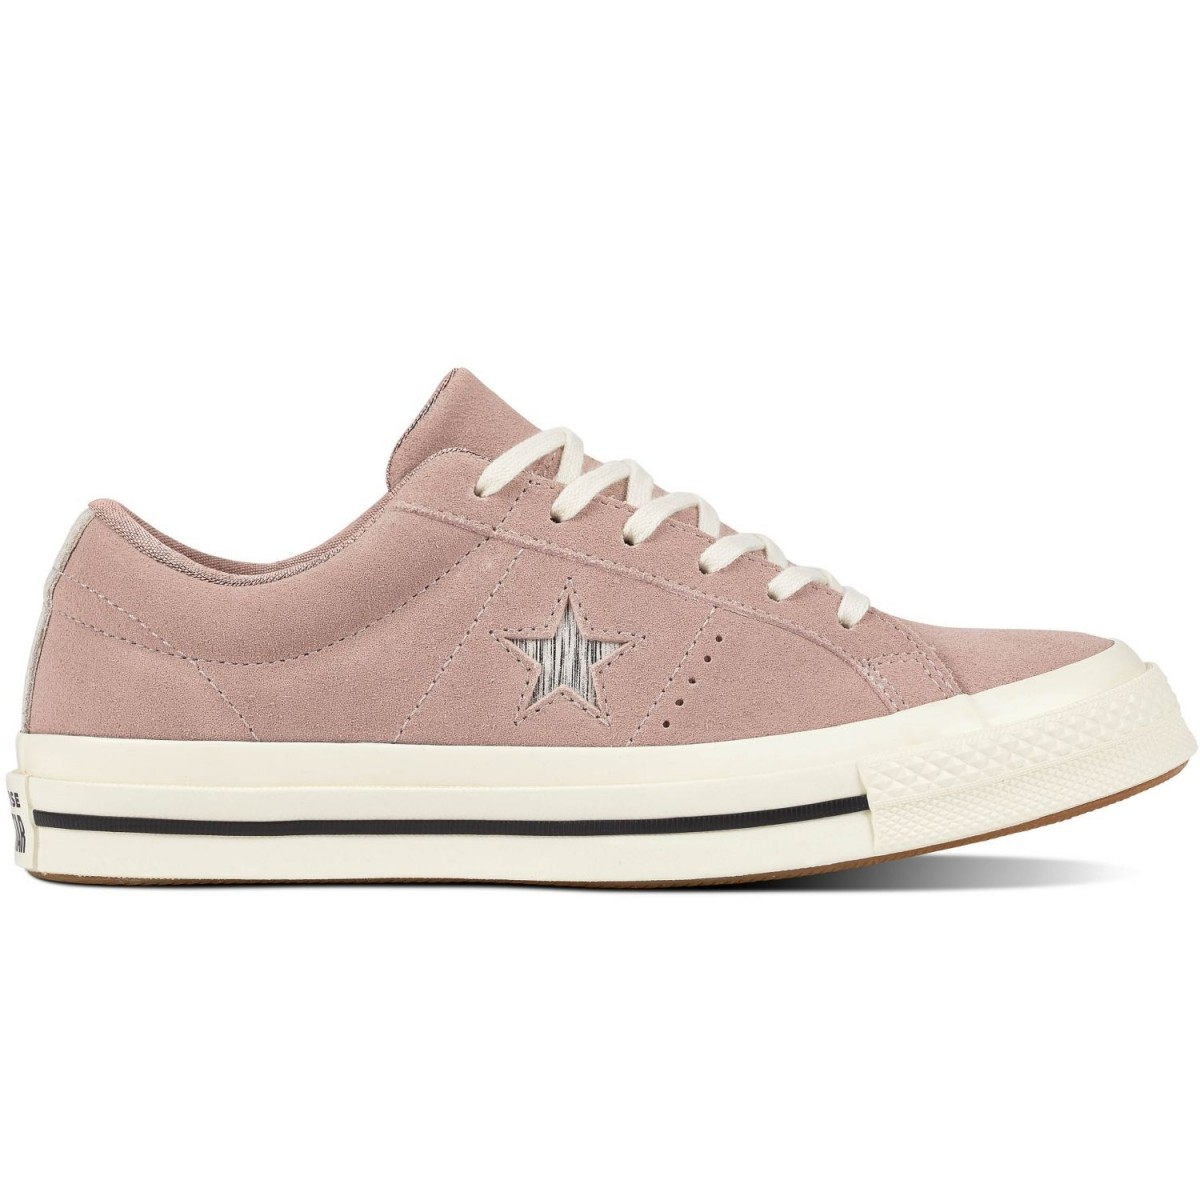 Converse One Star Suede Sneaker